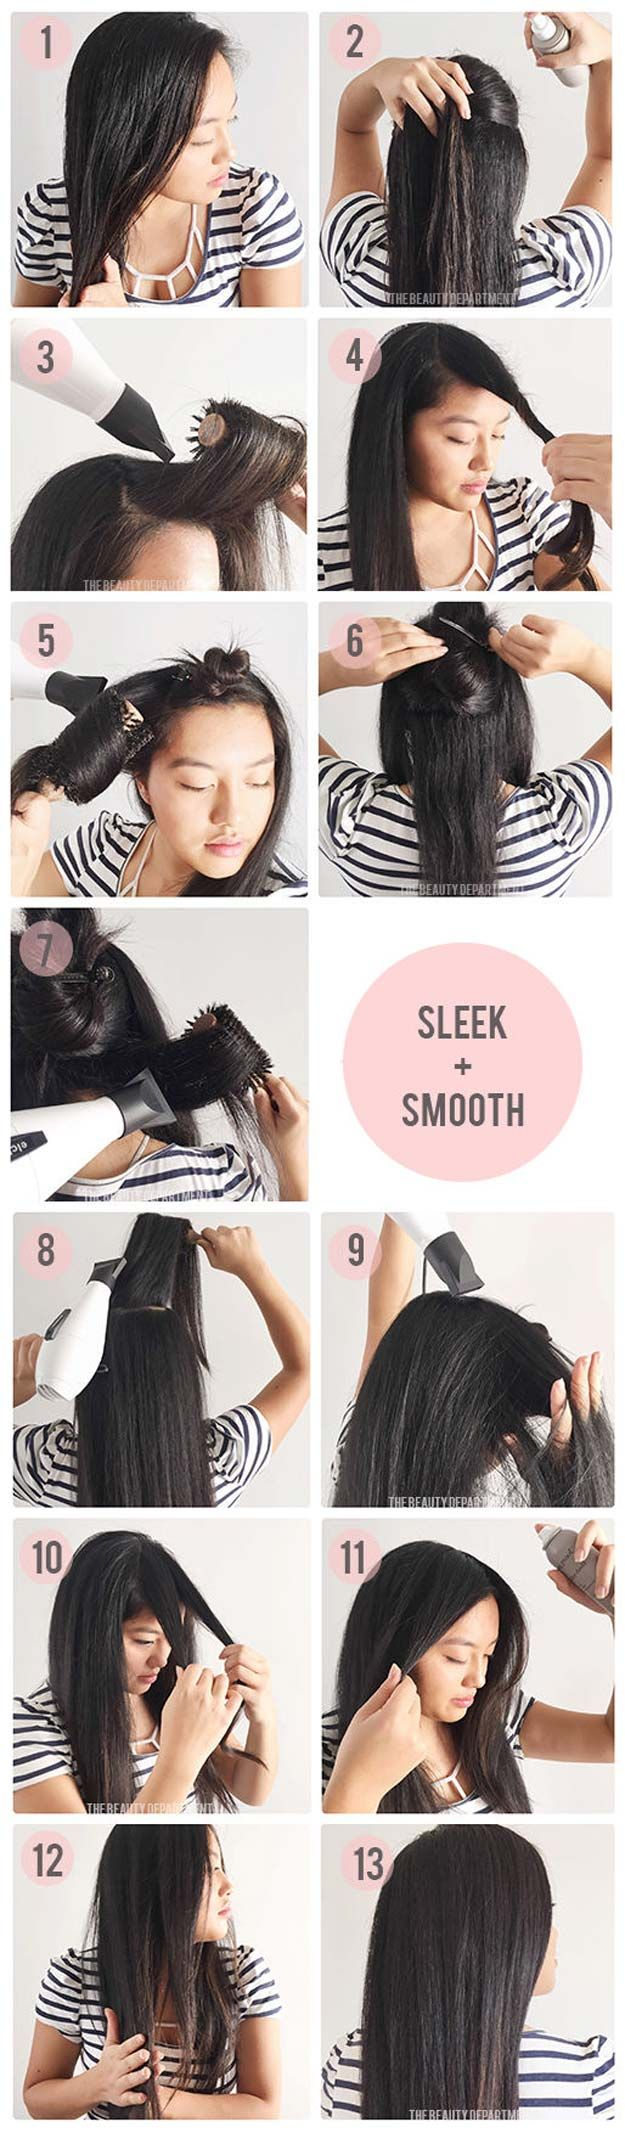 Hair Straightening Tutorials - Long-Lasting Frizz Control Blow-Dry -Looking For ...